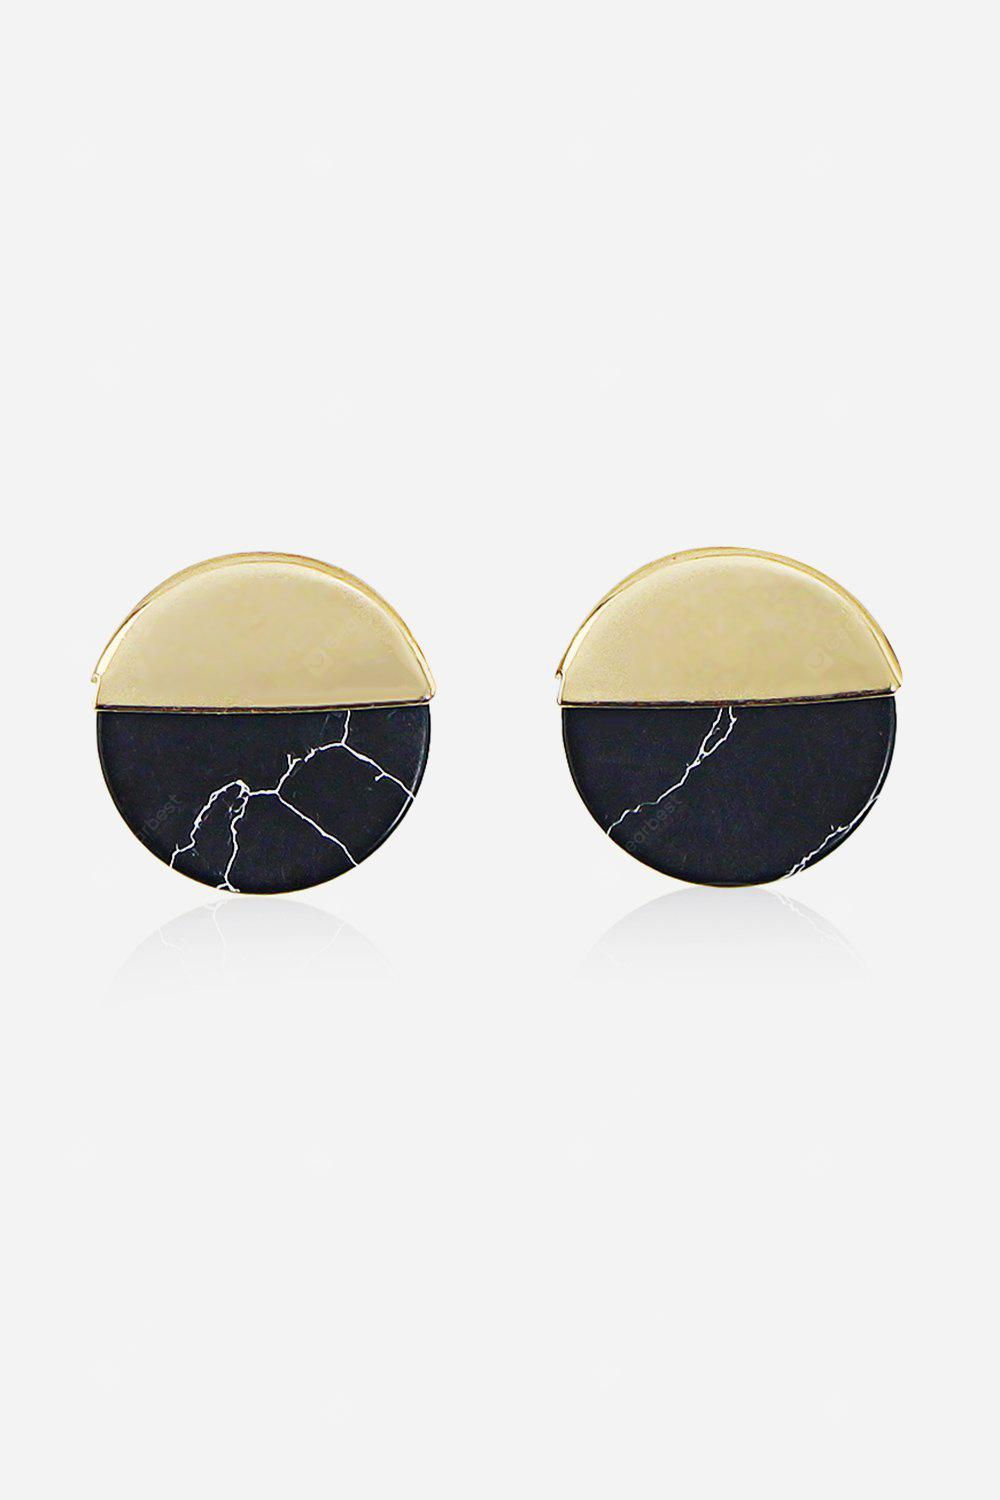 Fashion Round Wafer Splicing Earrings BLACK Watches & Jewelry > Fashion Jewelry > Earrings